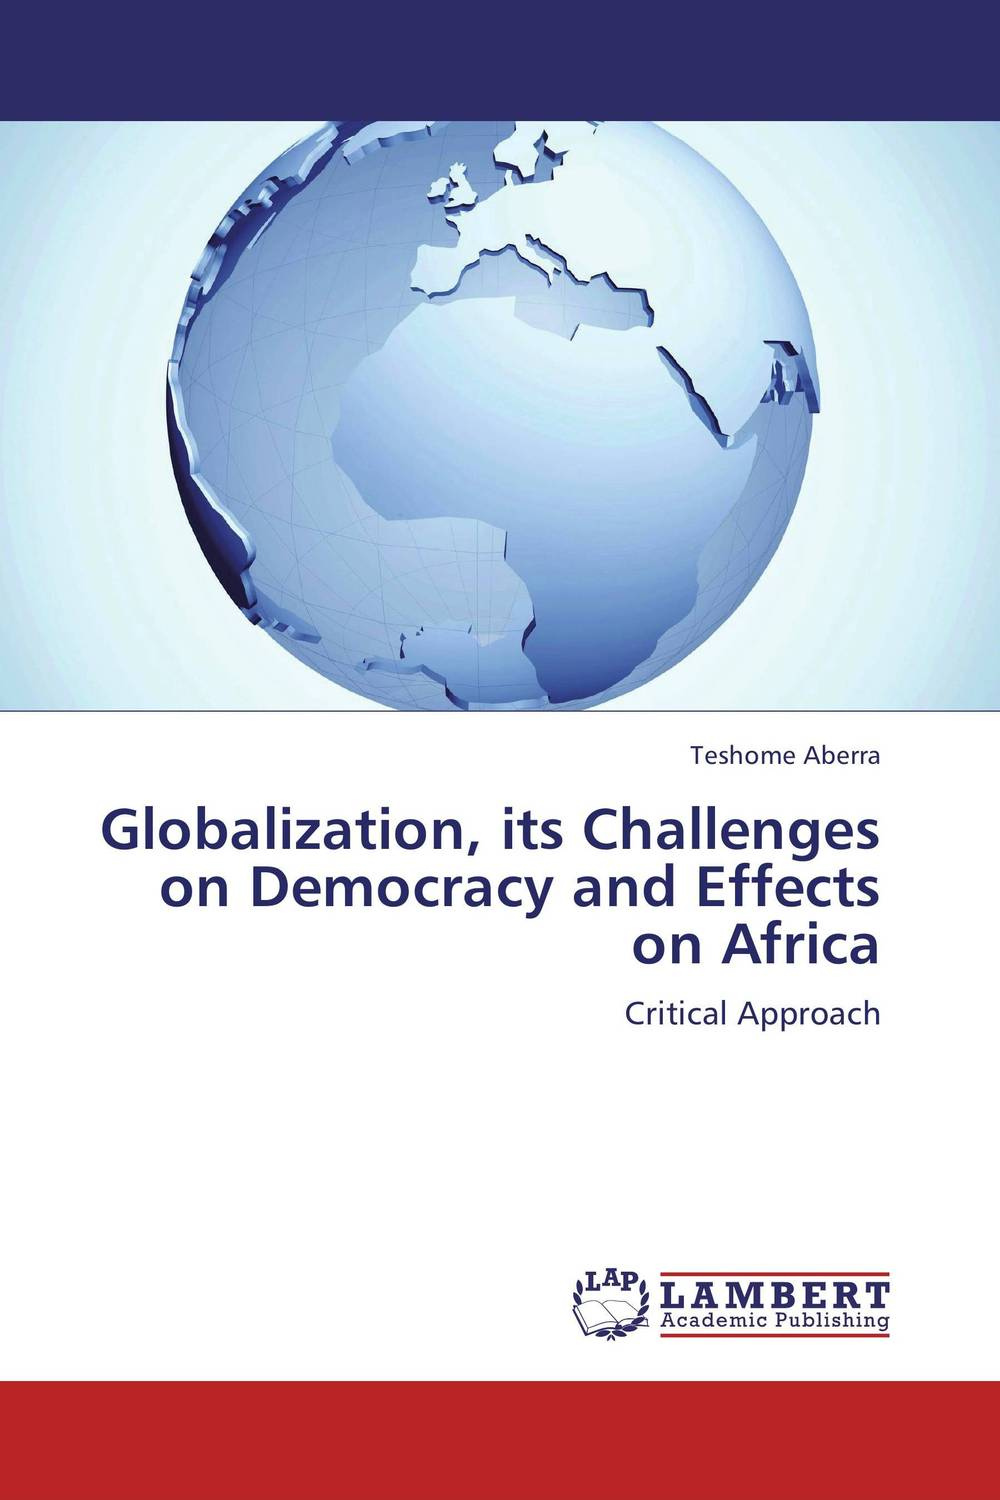 Globalization, its Challenges on Democracy and Effects on Africa globalization its challenges on democracy and effects on africa